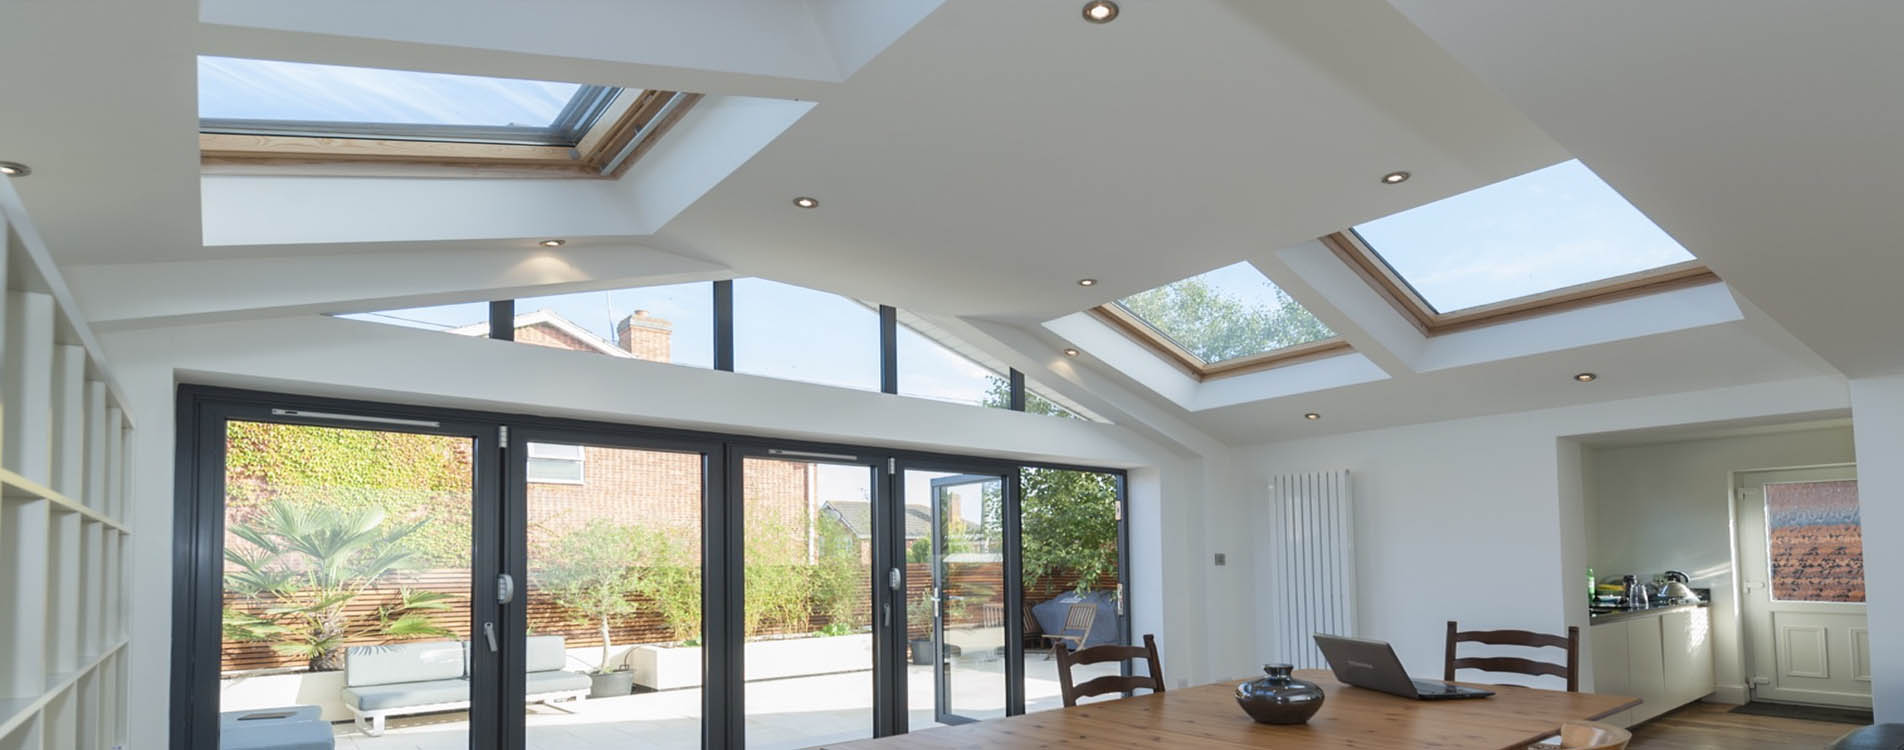 Conservatory roofs in Tyneside